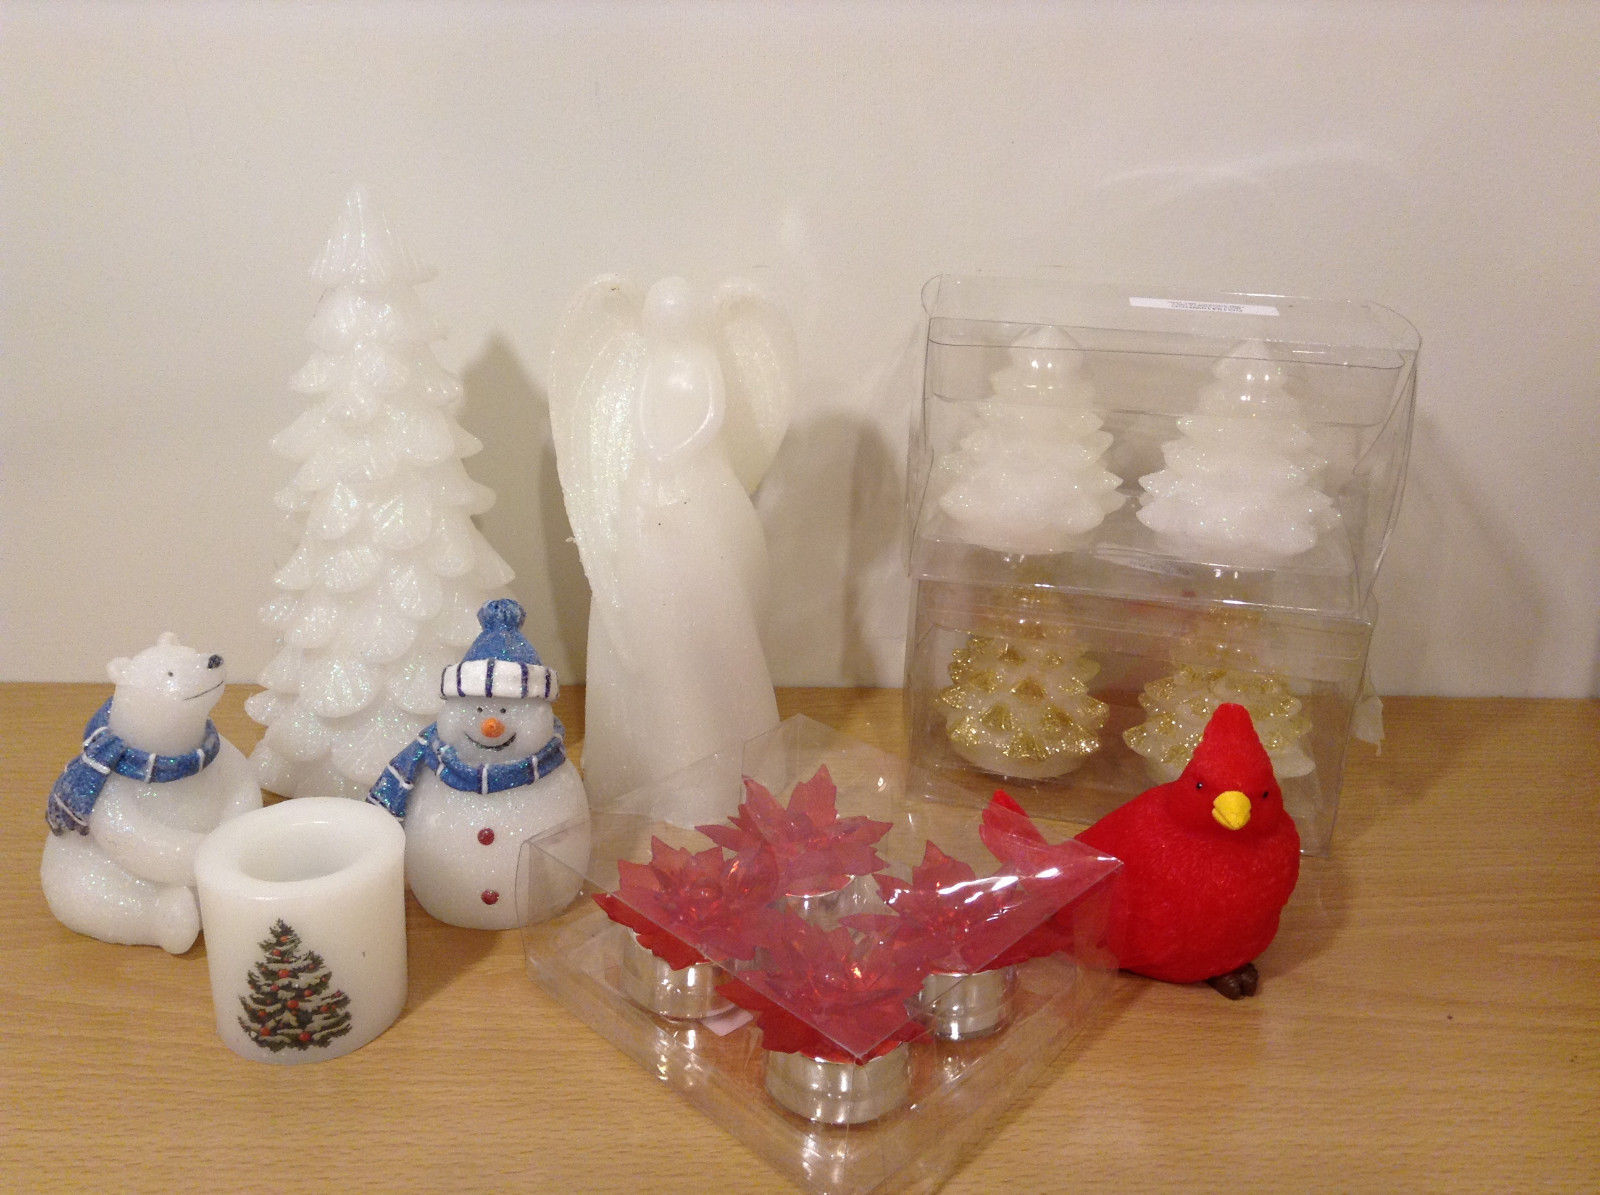 Big Lot Winter Holiday Home Decor Flameless Real Wax Led Candles Figurines